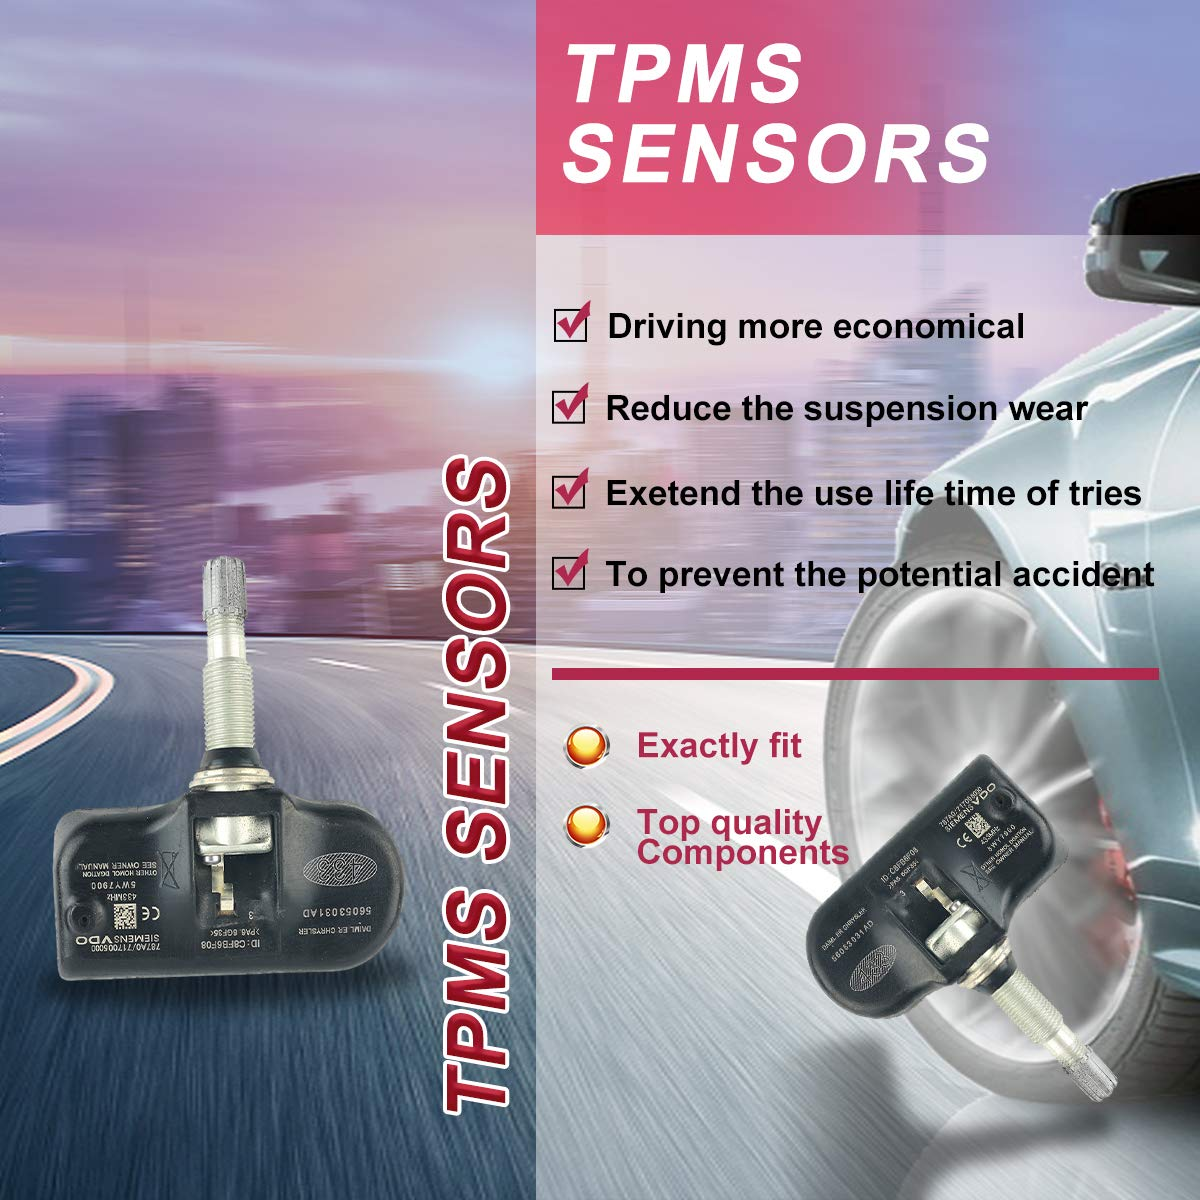 Details about  /4x TPMS Tire Pressure Monitoring Sensor for Chrysler 300 Town Country 11-16